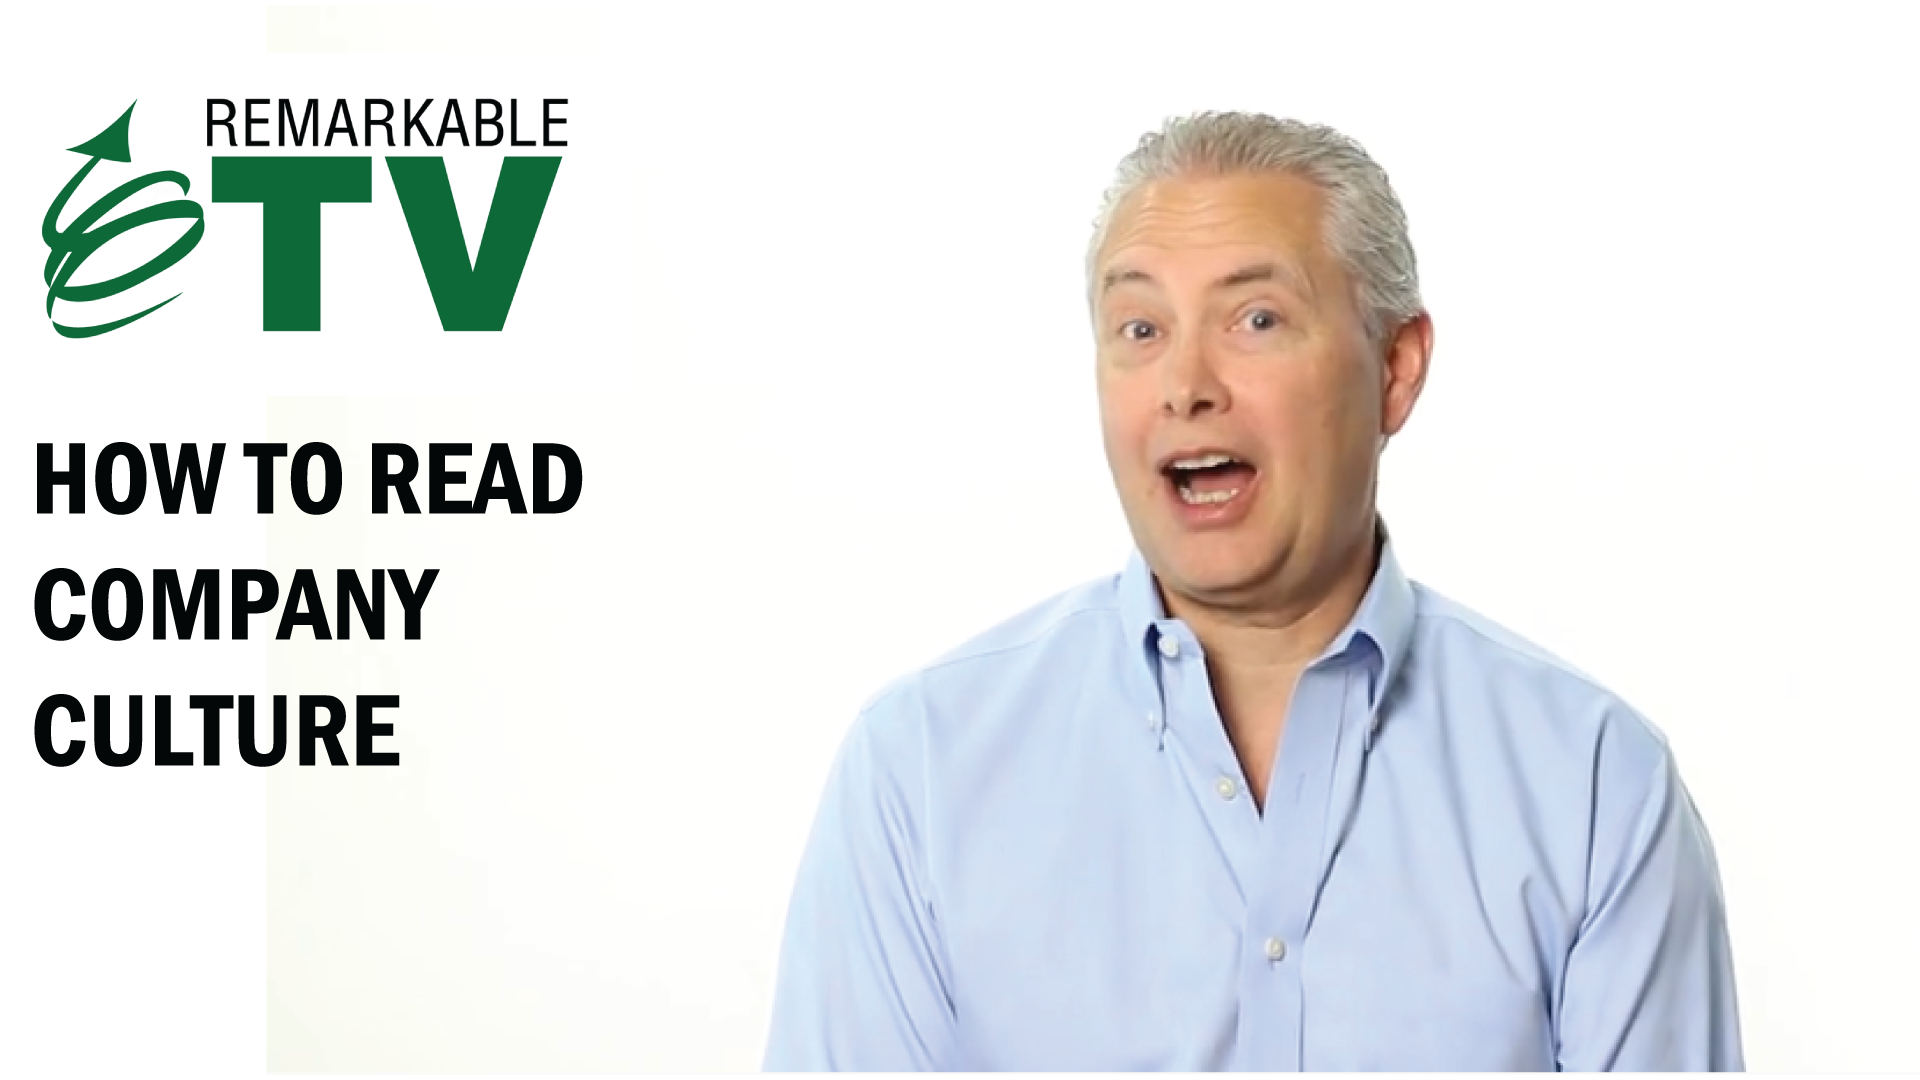 Remarkable TV episode for How to Read Company Culture with Kevin Eikenberry